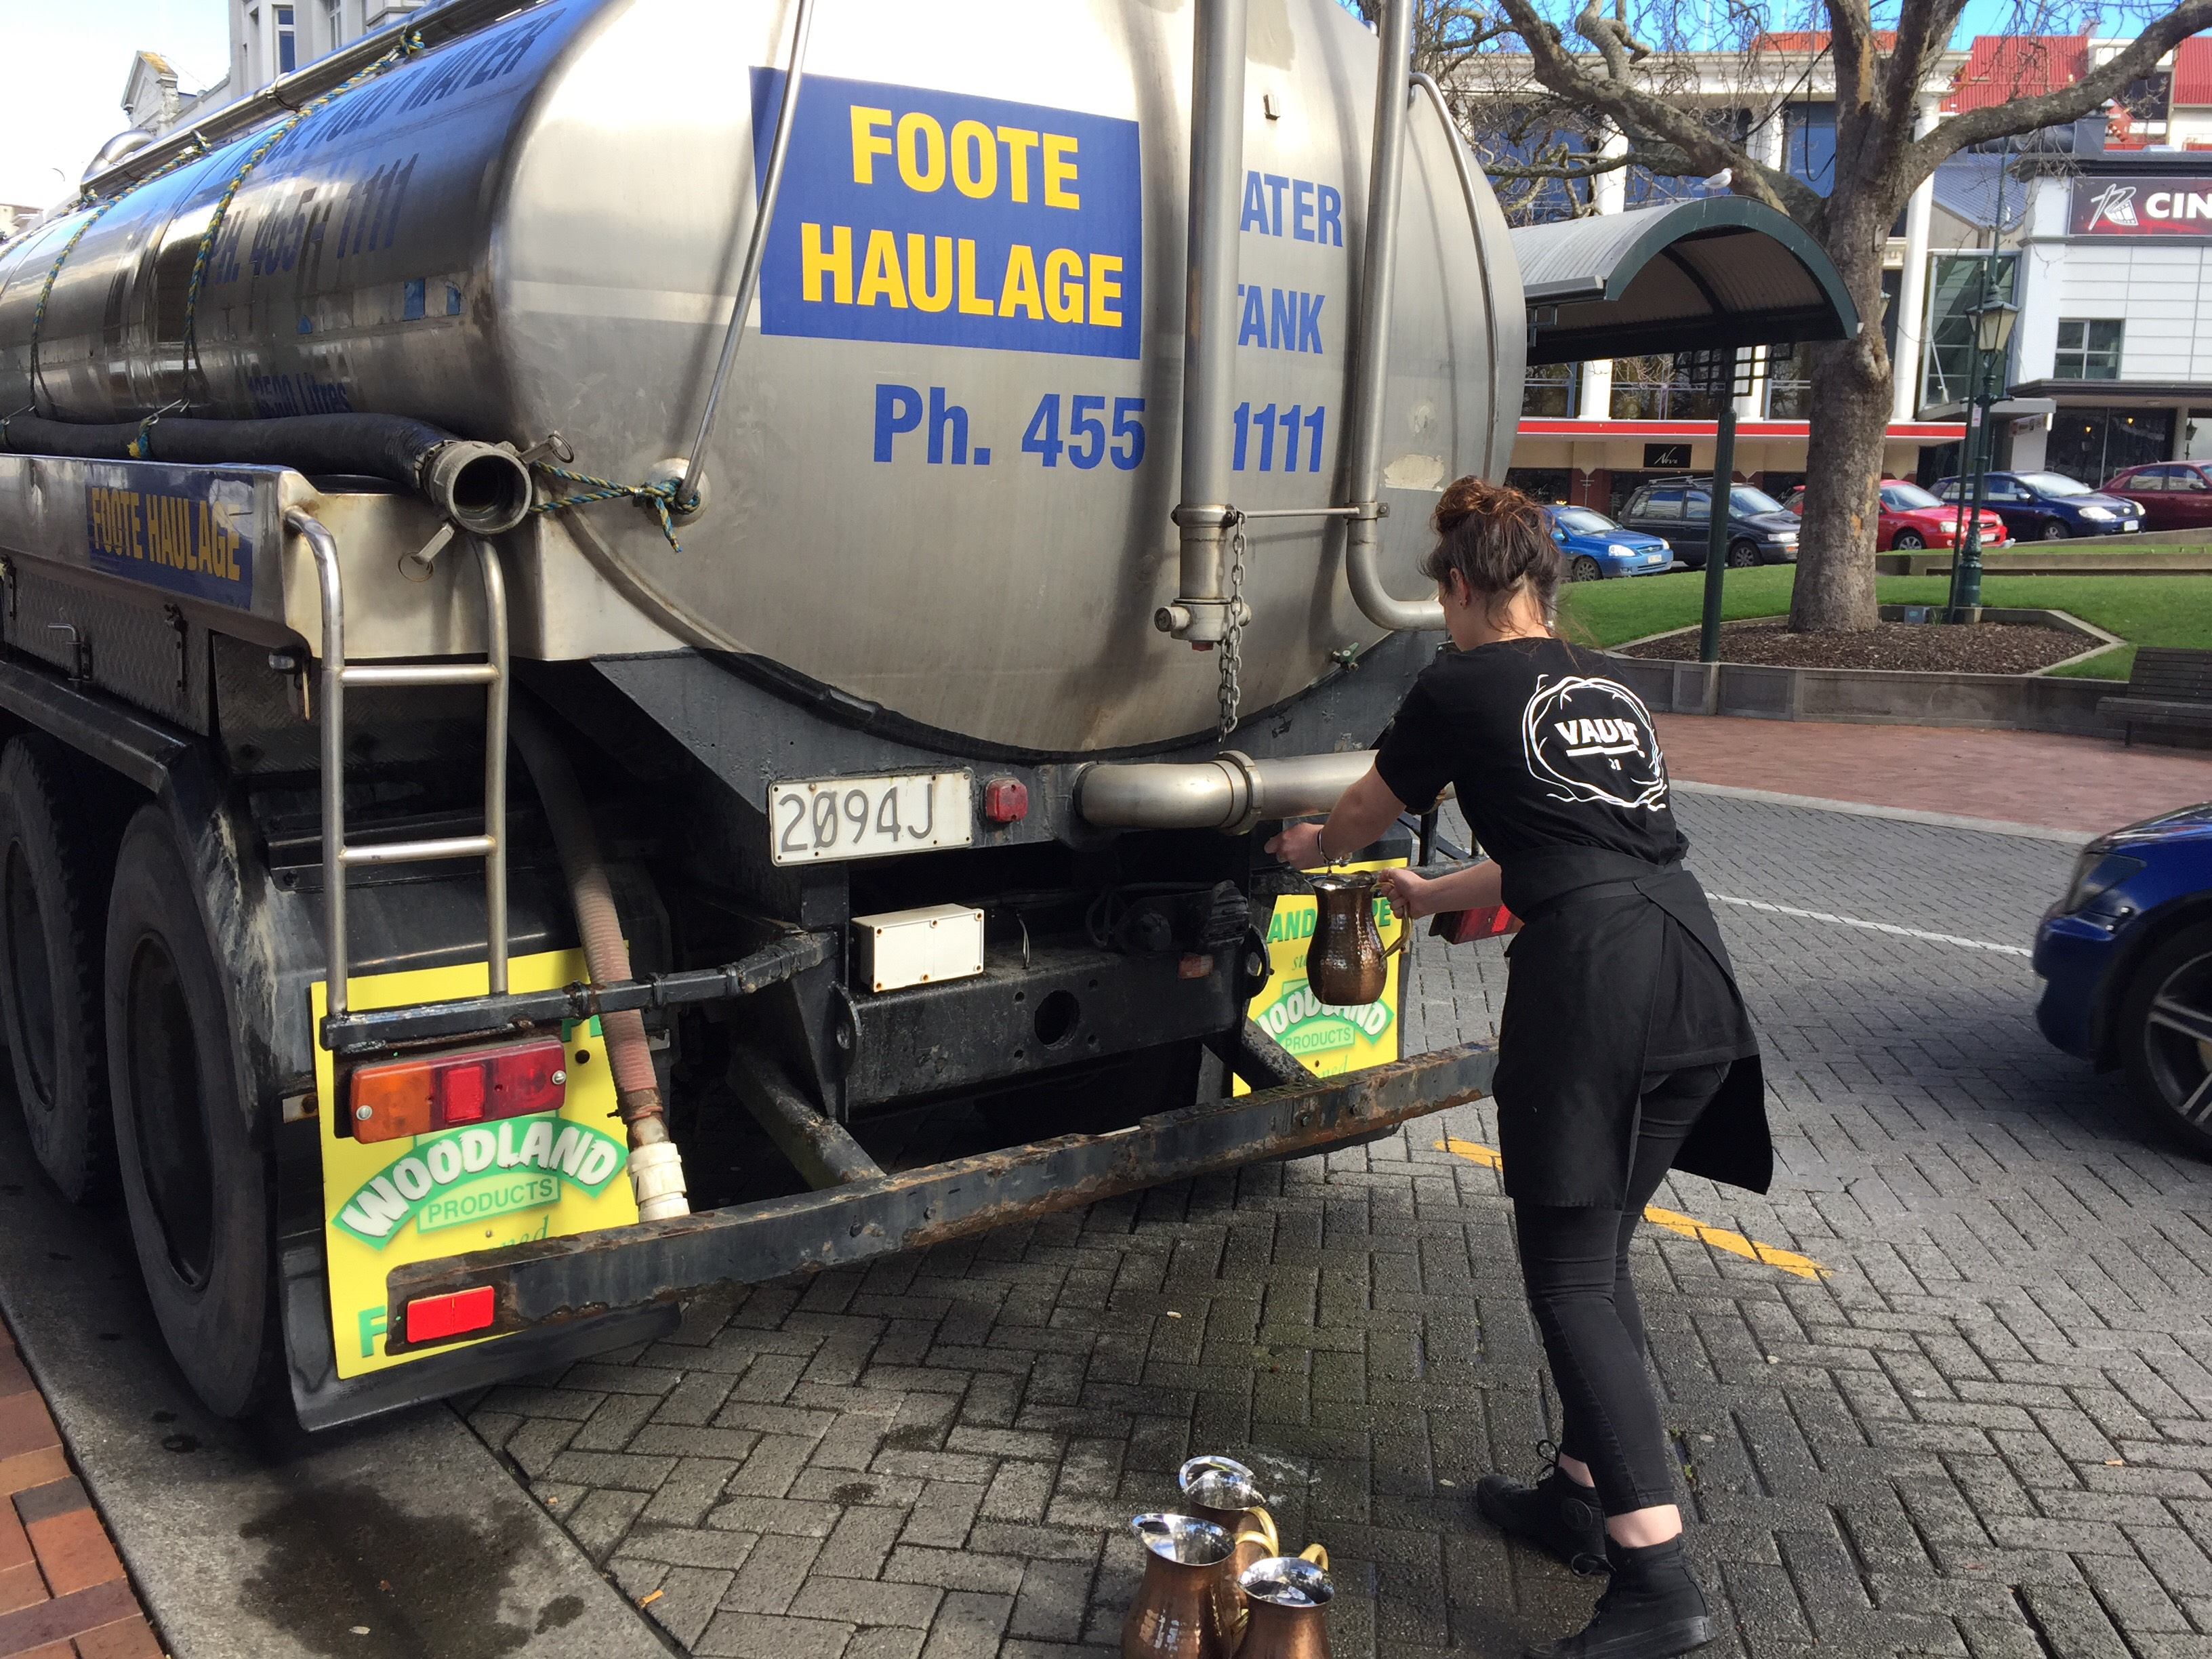 Find a water tanker near you